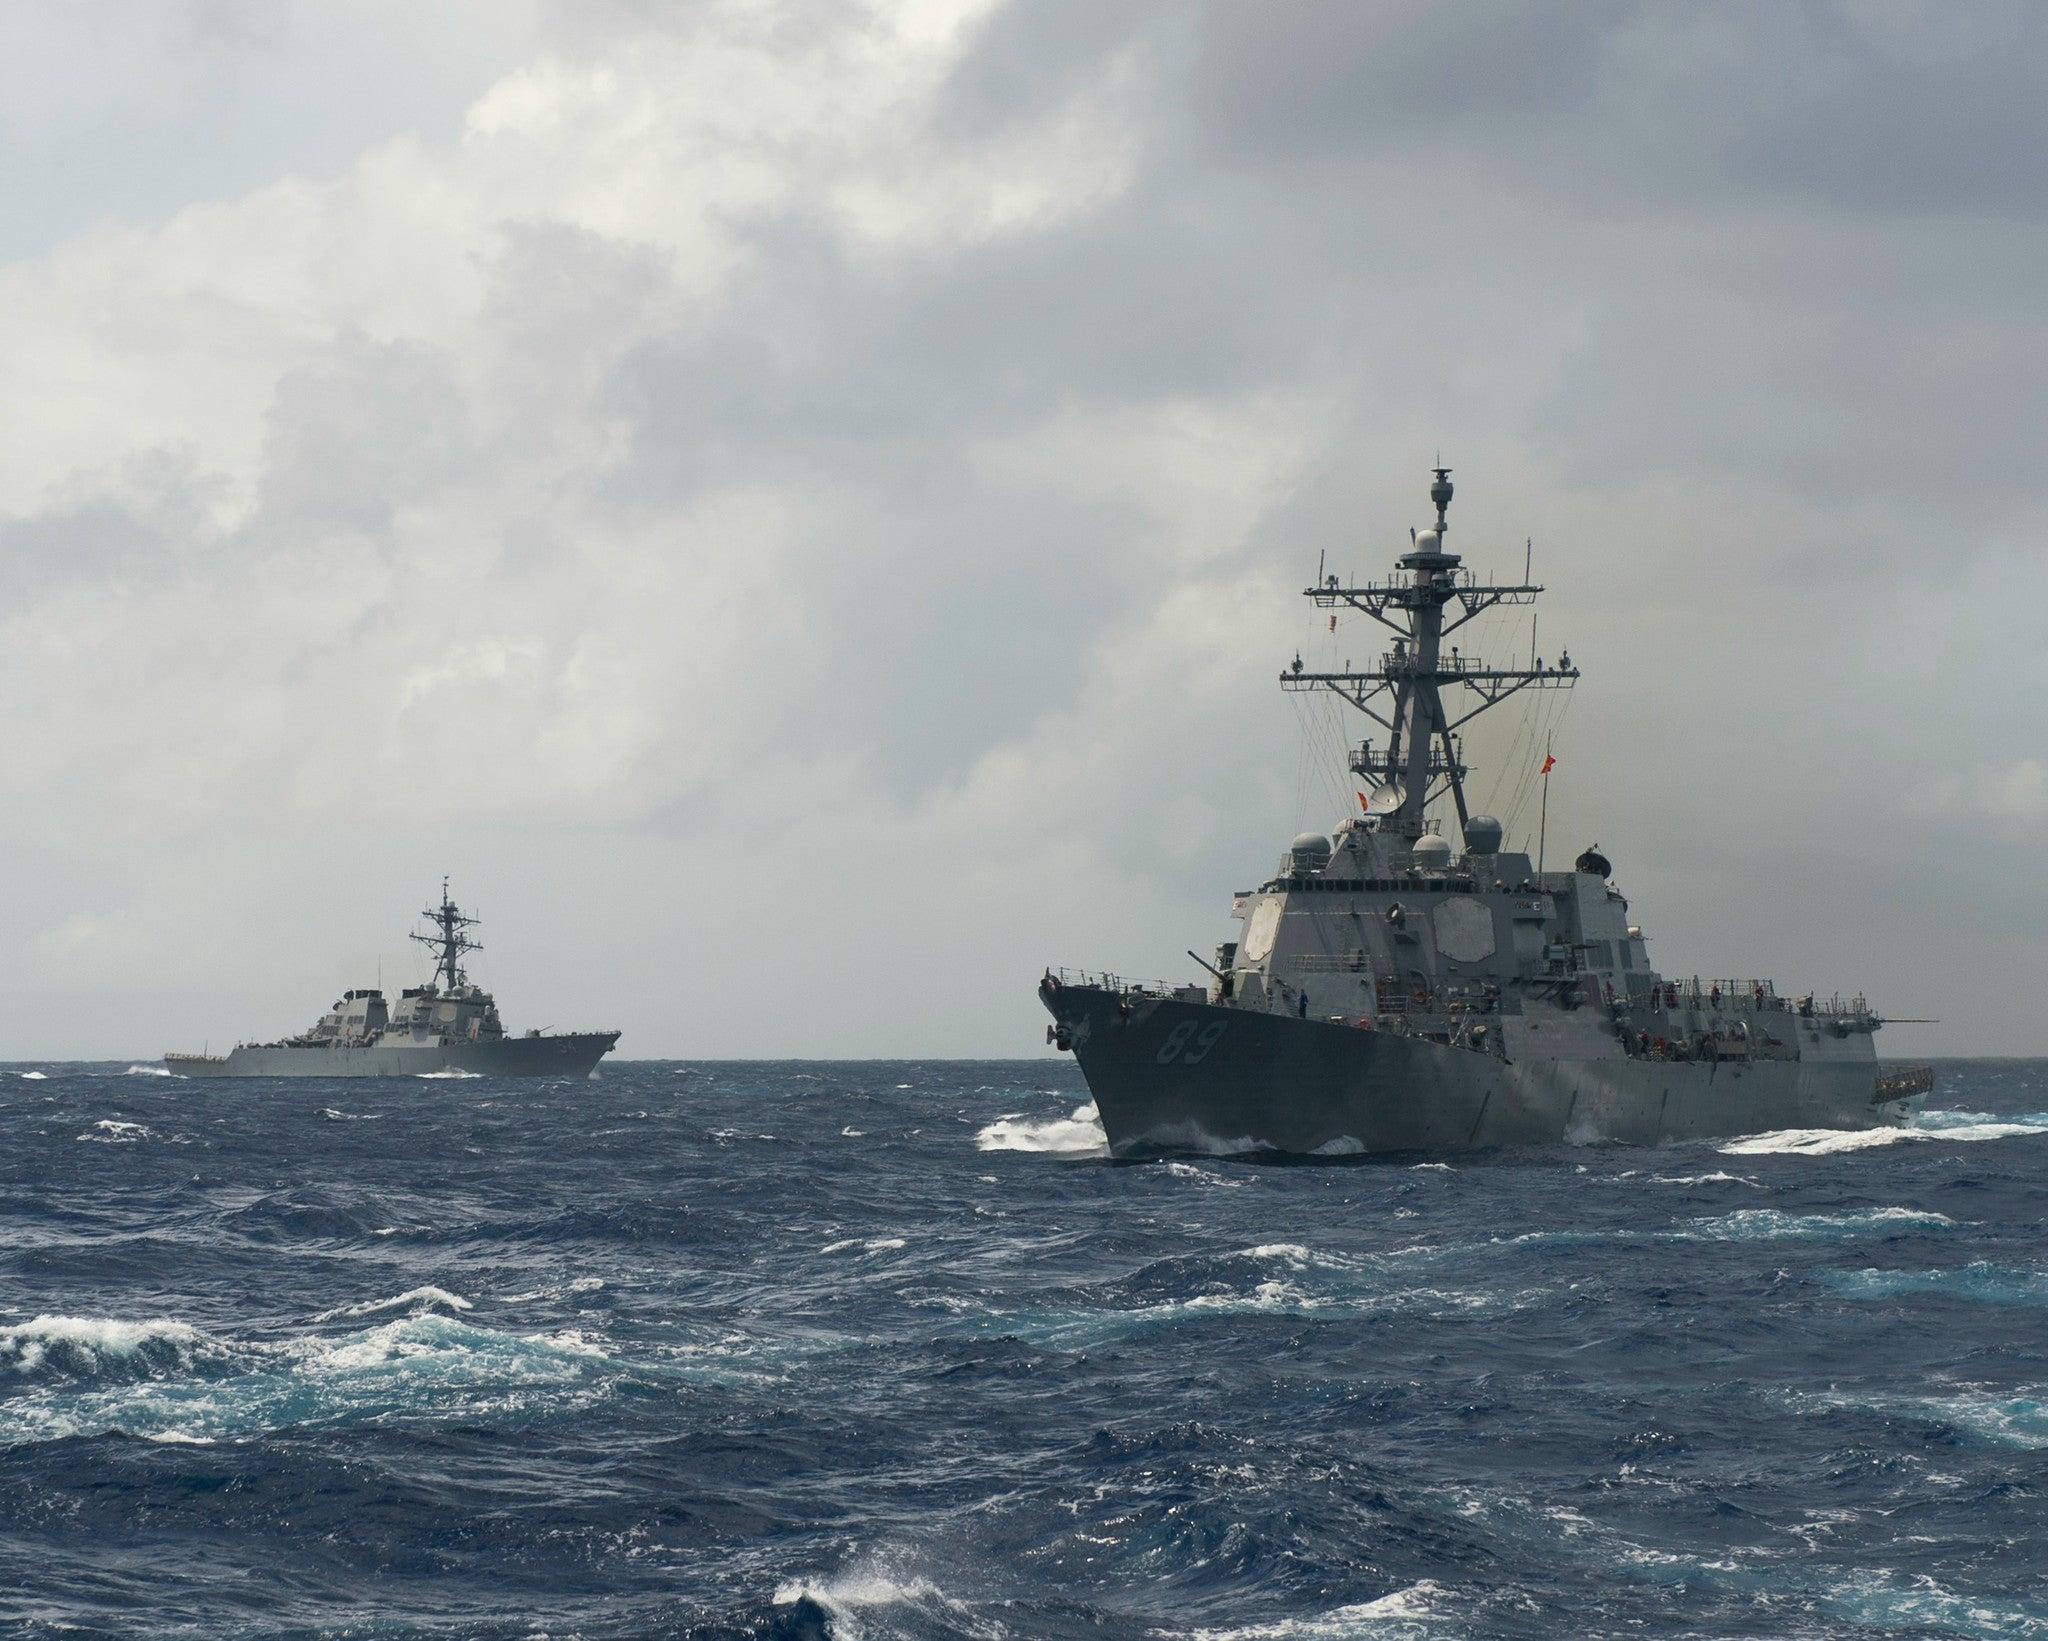 "USS Curtis Wilbur DDG-54 and USS Mustin DDG-89 Philippine Sea September 18, 2013 - 8 x 10"" Photograph"